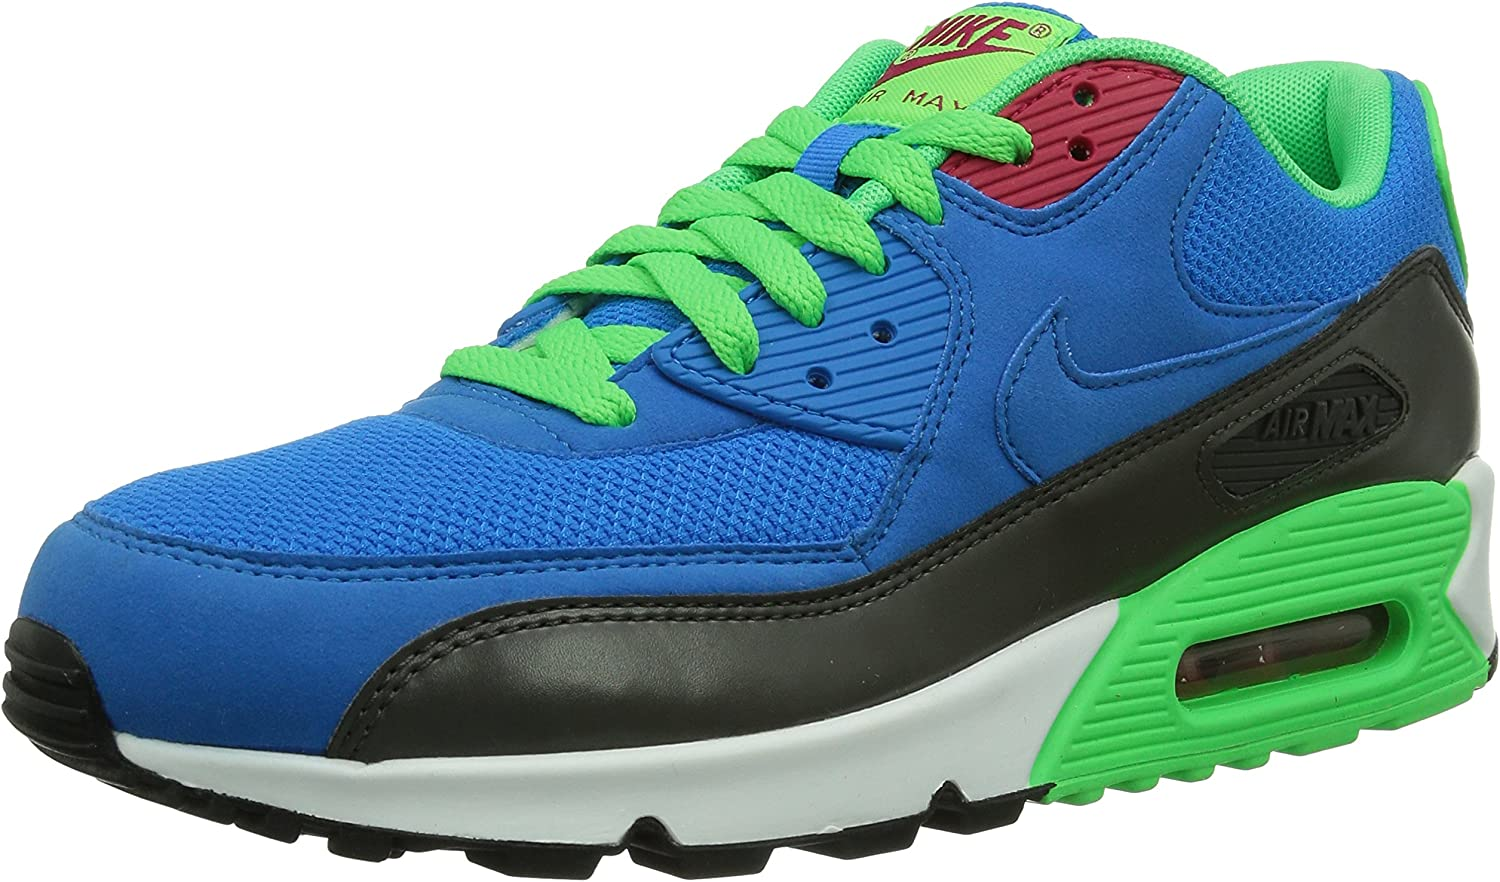 promo code 542f6 15e97 Nike Air Max 90 Essential shoes Men's Running nhibjf5721-New Clothing